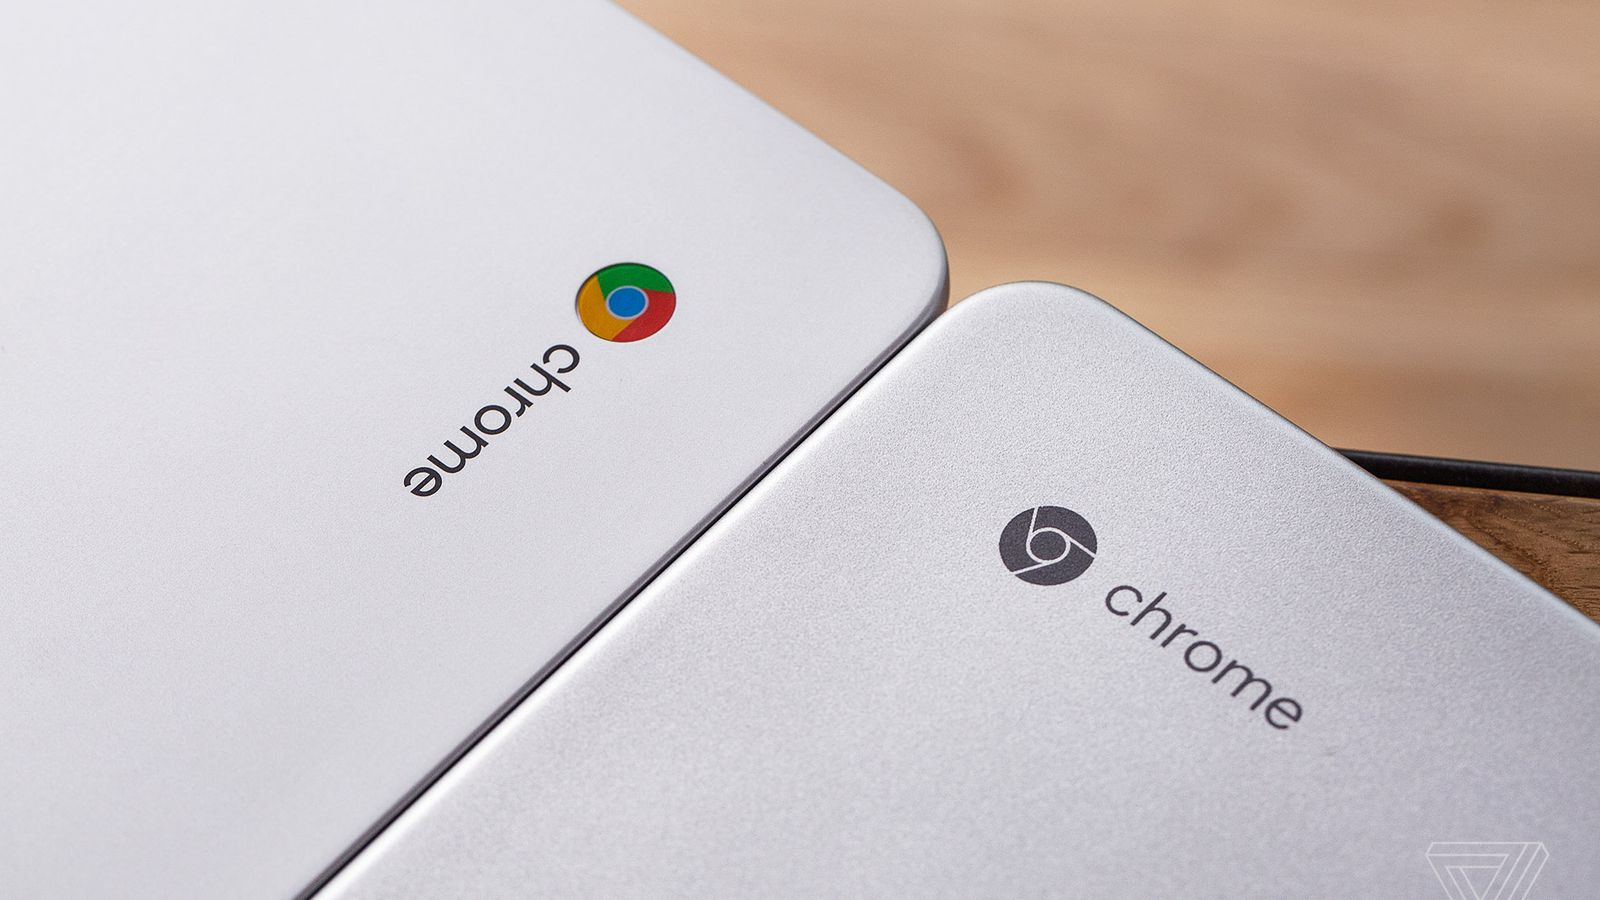 Image for Microsoft is really scared of Chromebooks in businesses and schools - The Verge